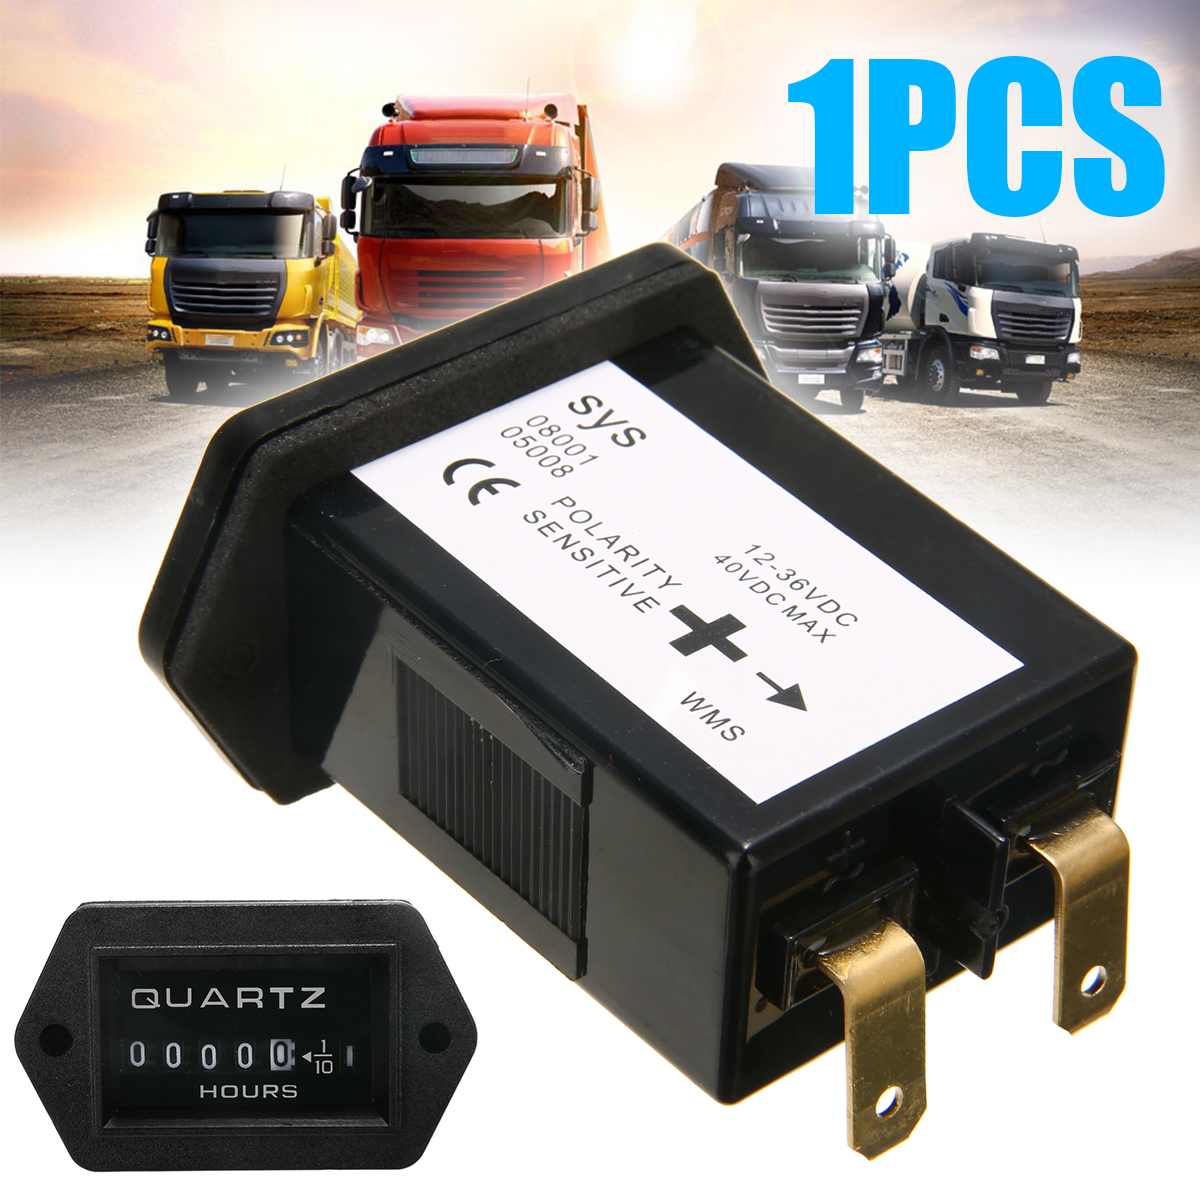 DC 12V-36V Car Truck Tractor Hour Meter Outboard Engine Rectangular Meter Easy to Install For Marine Boat Truck